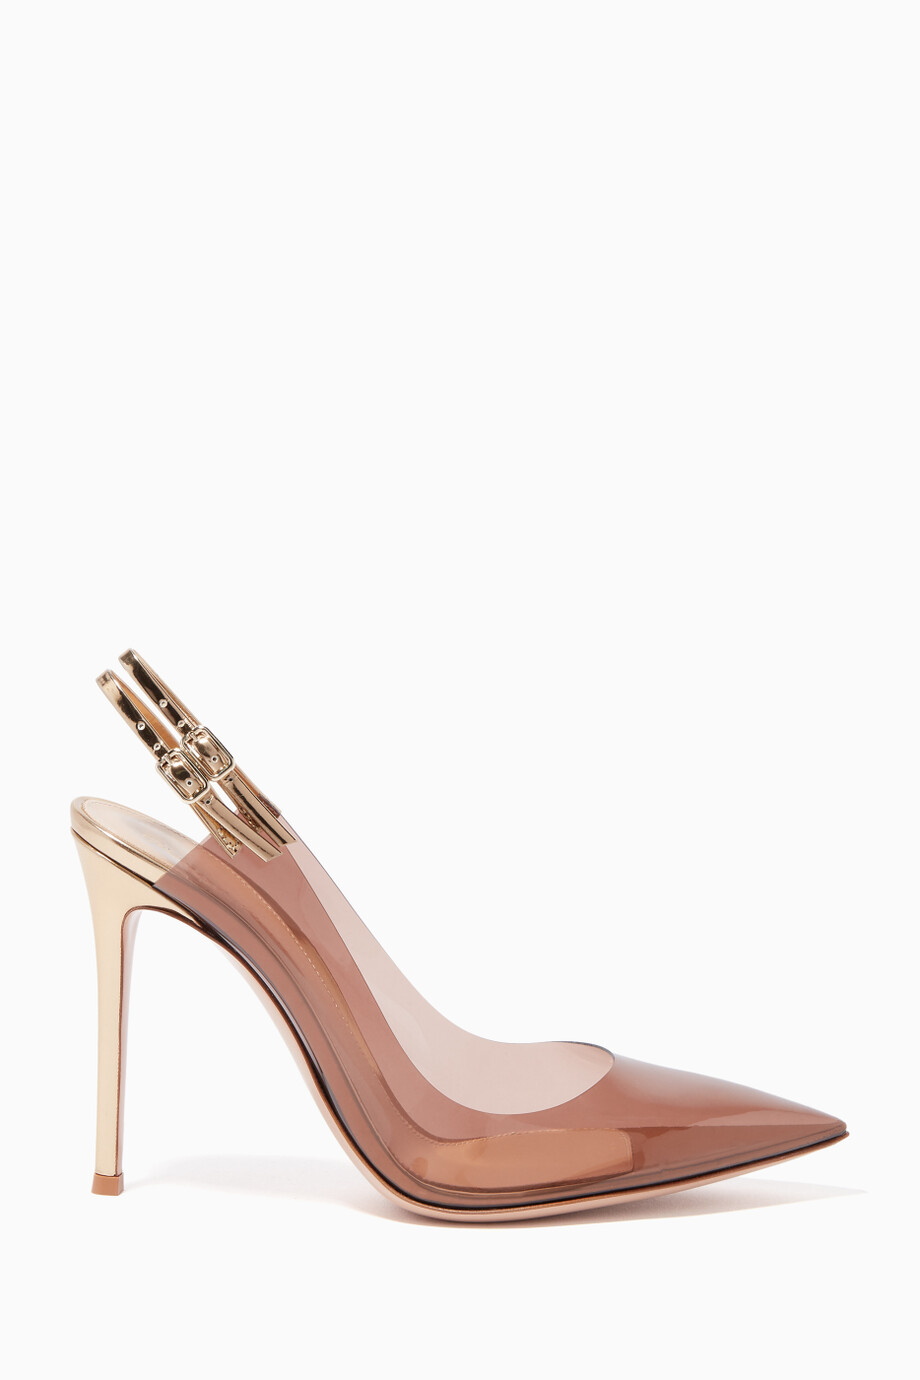 Shop Gianvito Rossi Pink Kylie Plexi Slingback Pumps for